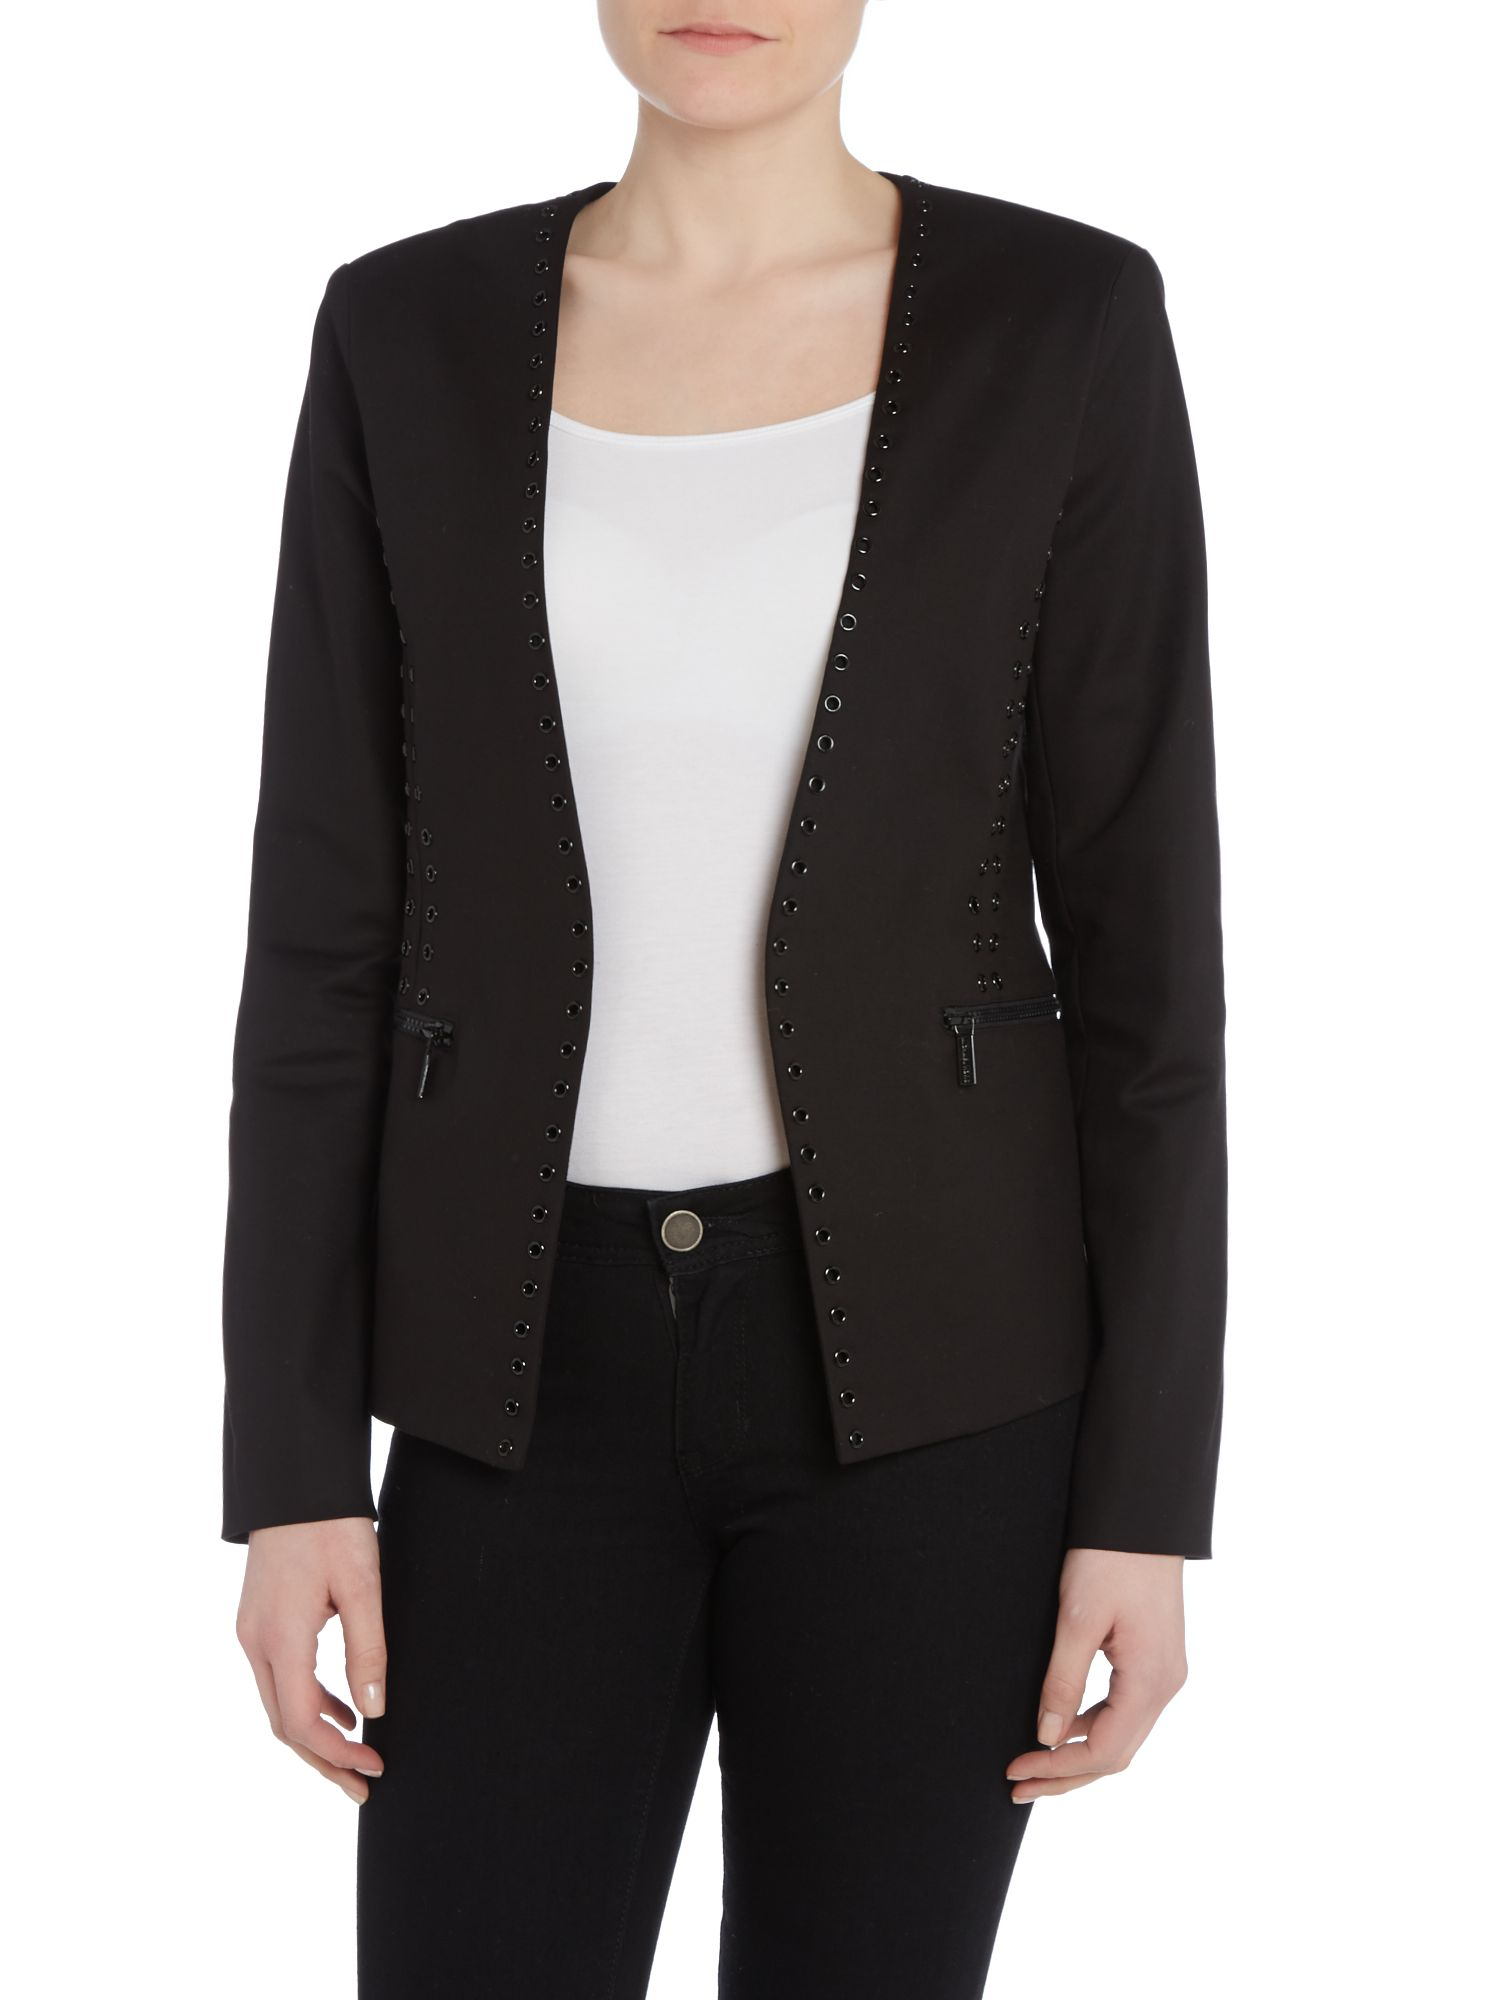 Collarless blazer with cut-out detail